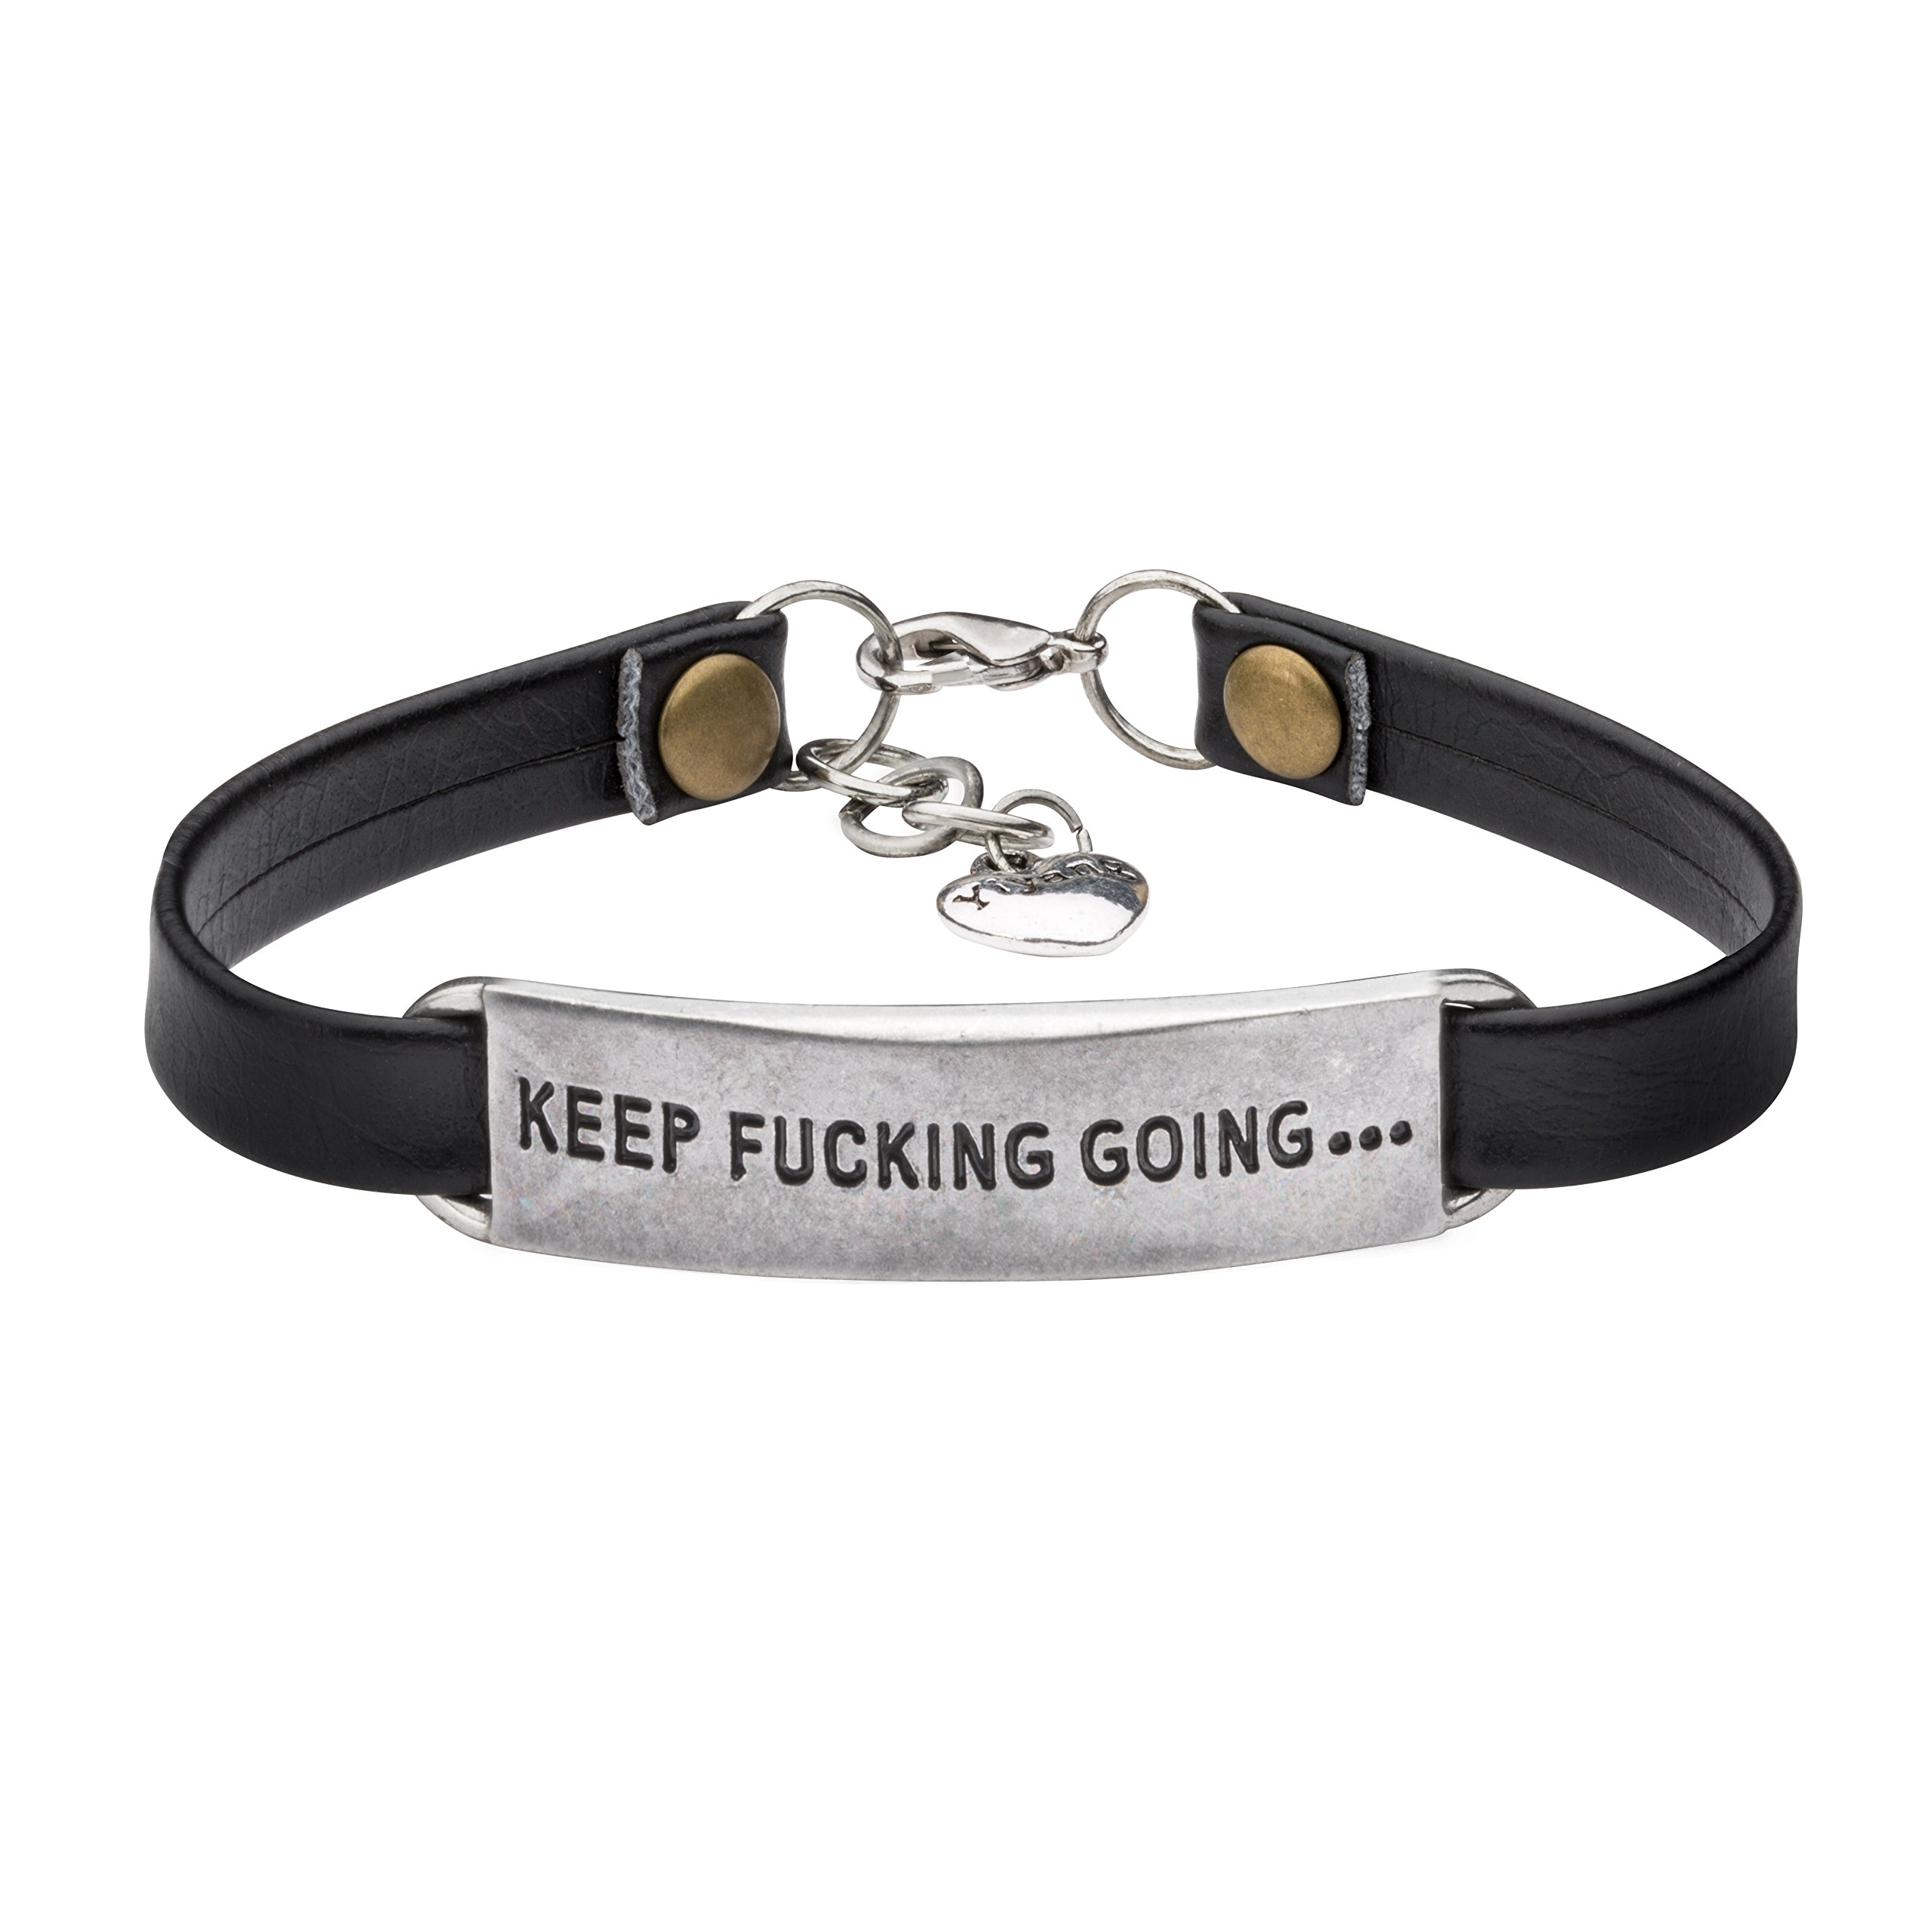 UNQJRY Inspirational Leather Bracelets for Friends Vintage Jewelry Gift for Girl Women Friendship Bangle Engraved Mantra Keep Fucking Going